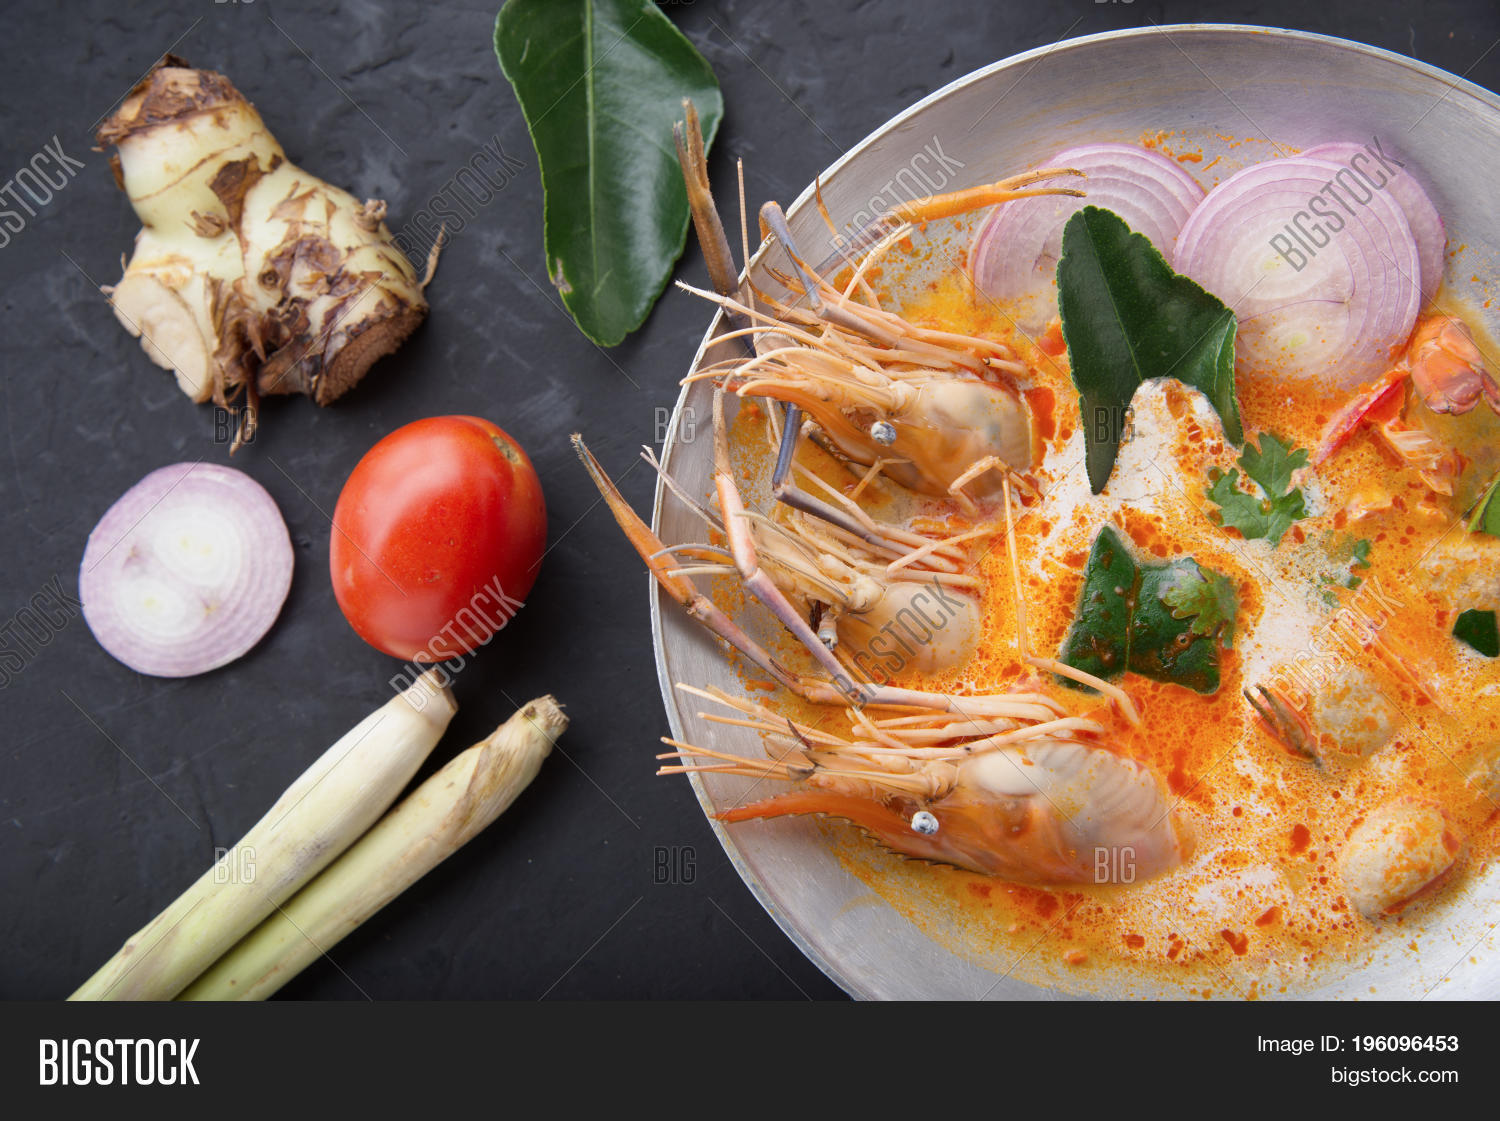 Cuisine Yam Tom Yam Kong Tom Yum Image Photo Free Trial Bigstock